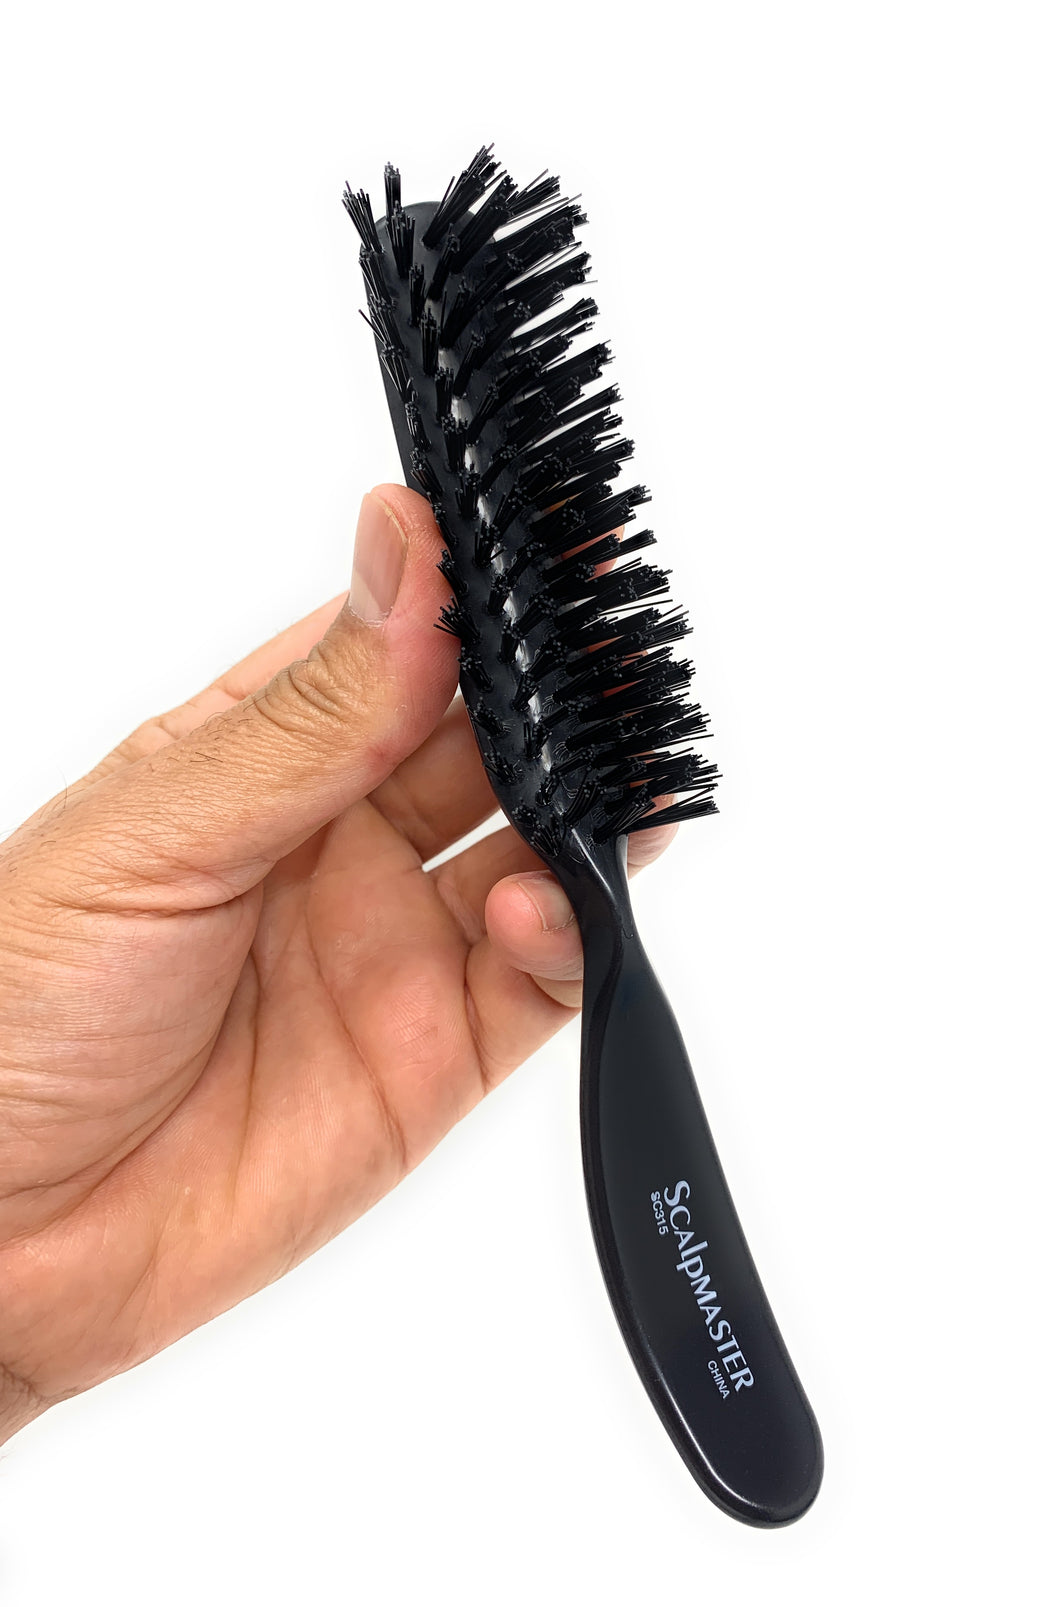 Scalpmaster Nylon Bristle Brush Nylon Bristle Salon Brush Hair Brush 7 Rows